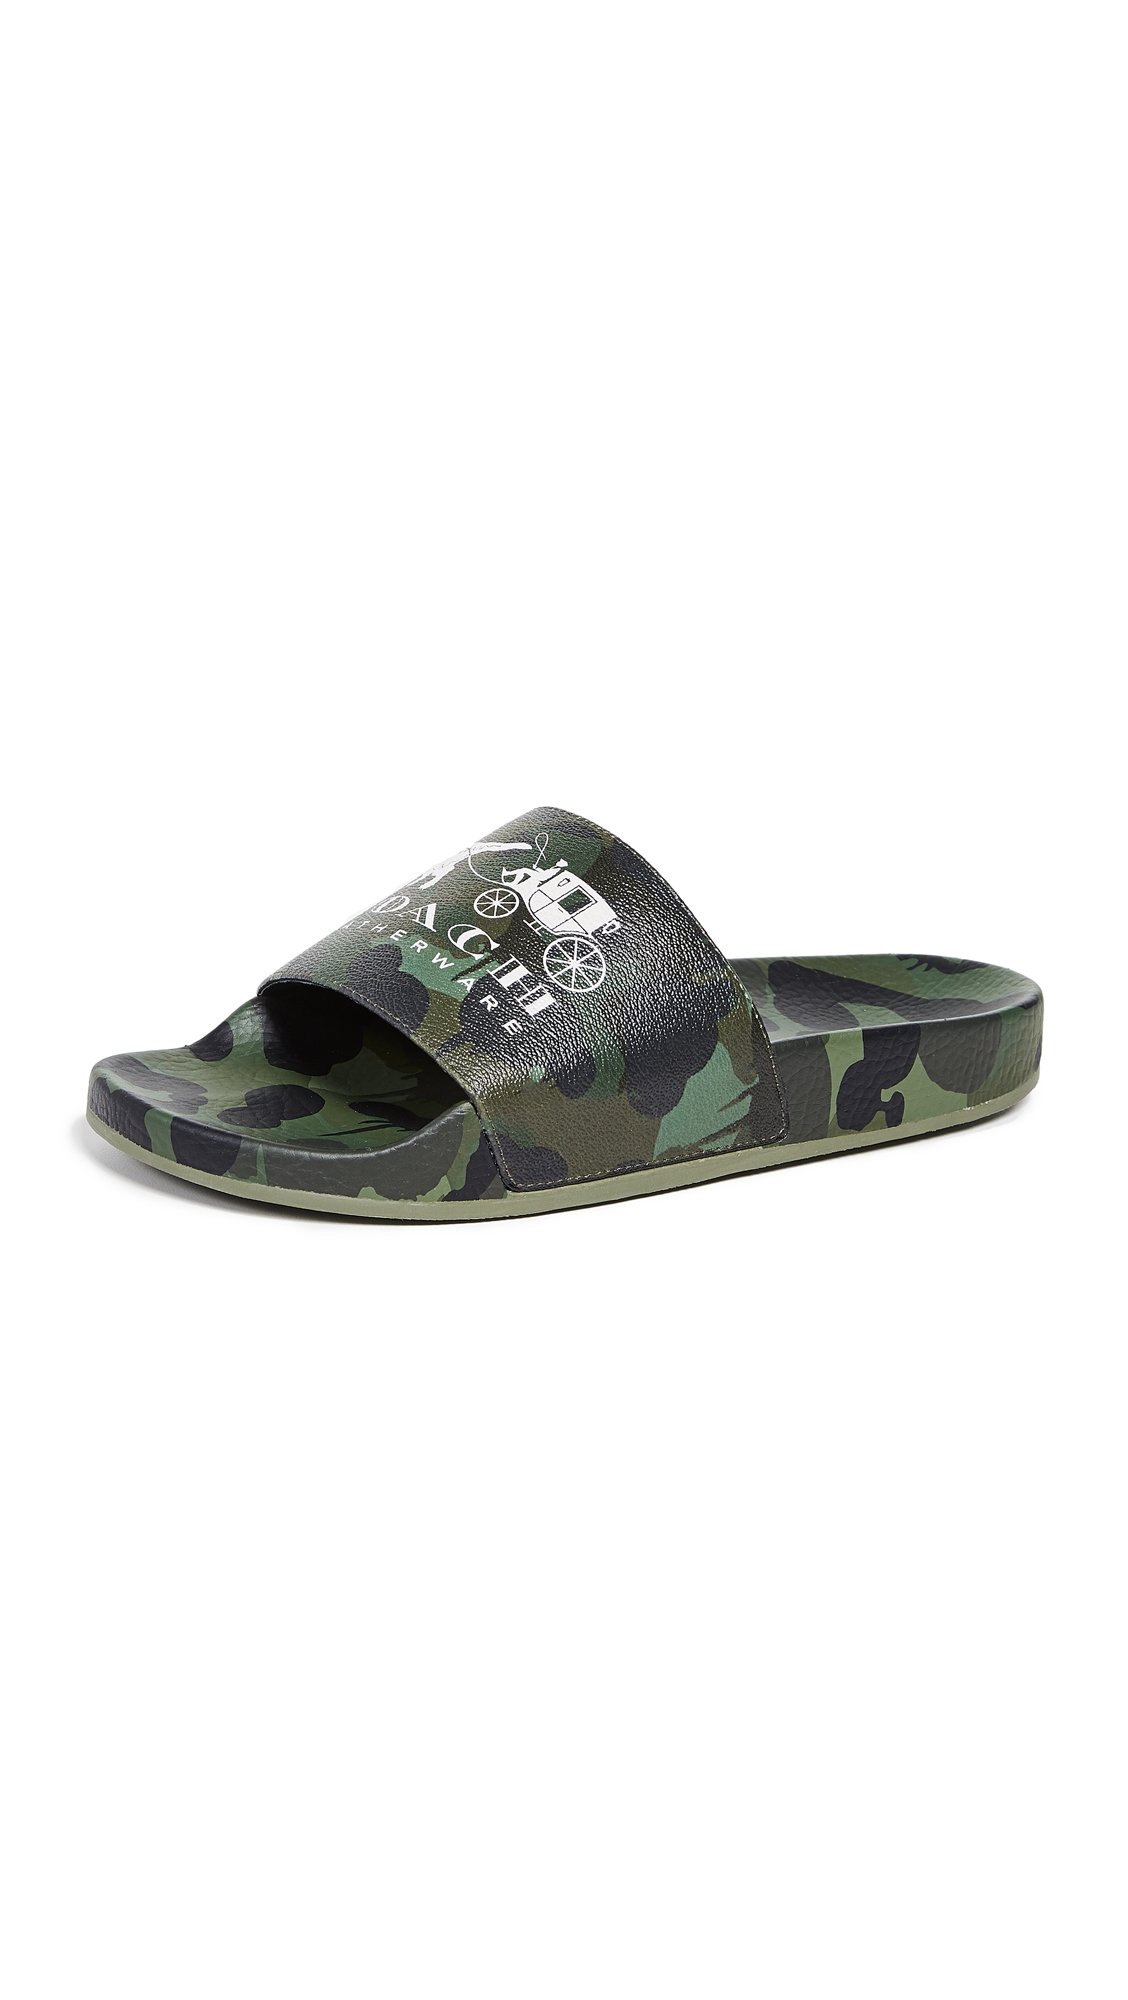 Coach Slippers REXY AND CARRIAGE WILD BEAST POOL SLIDES